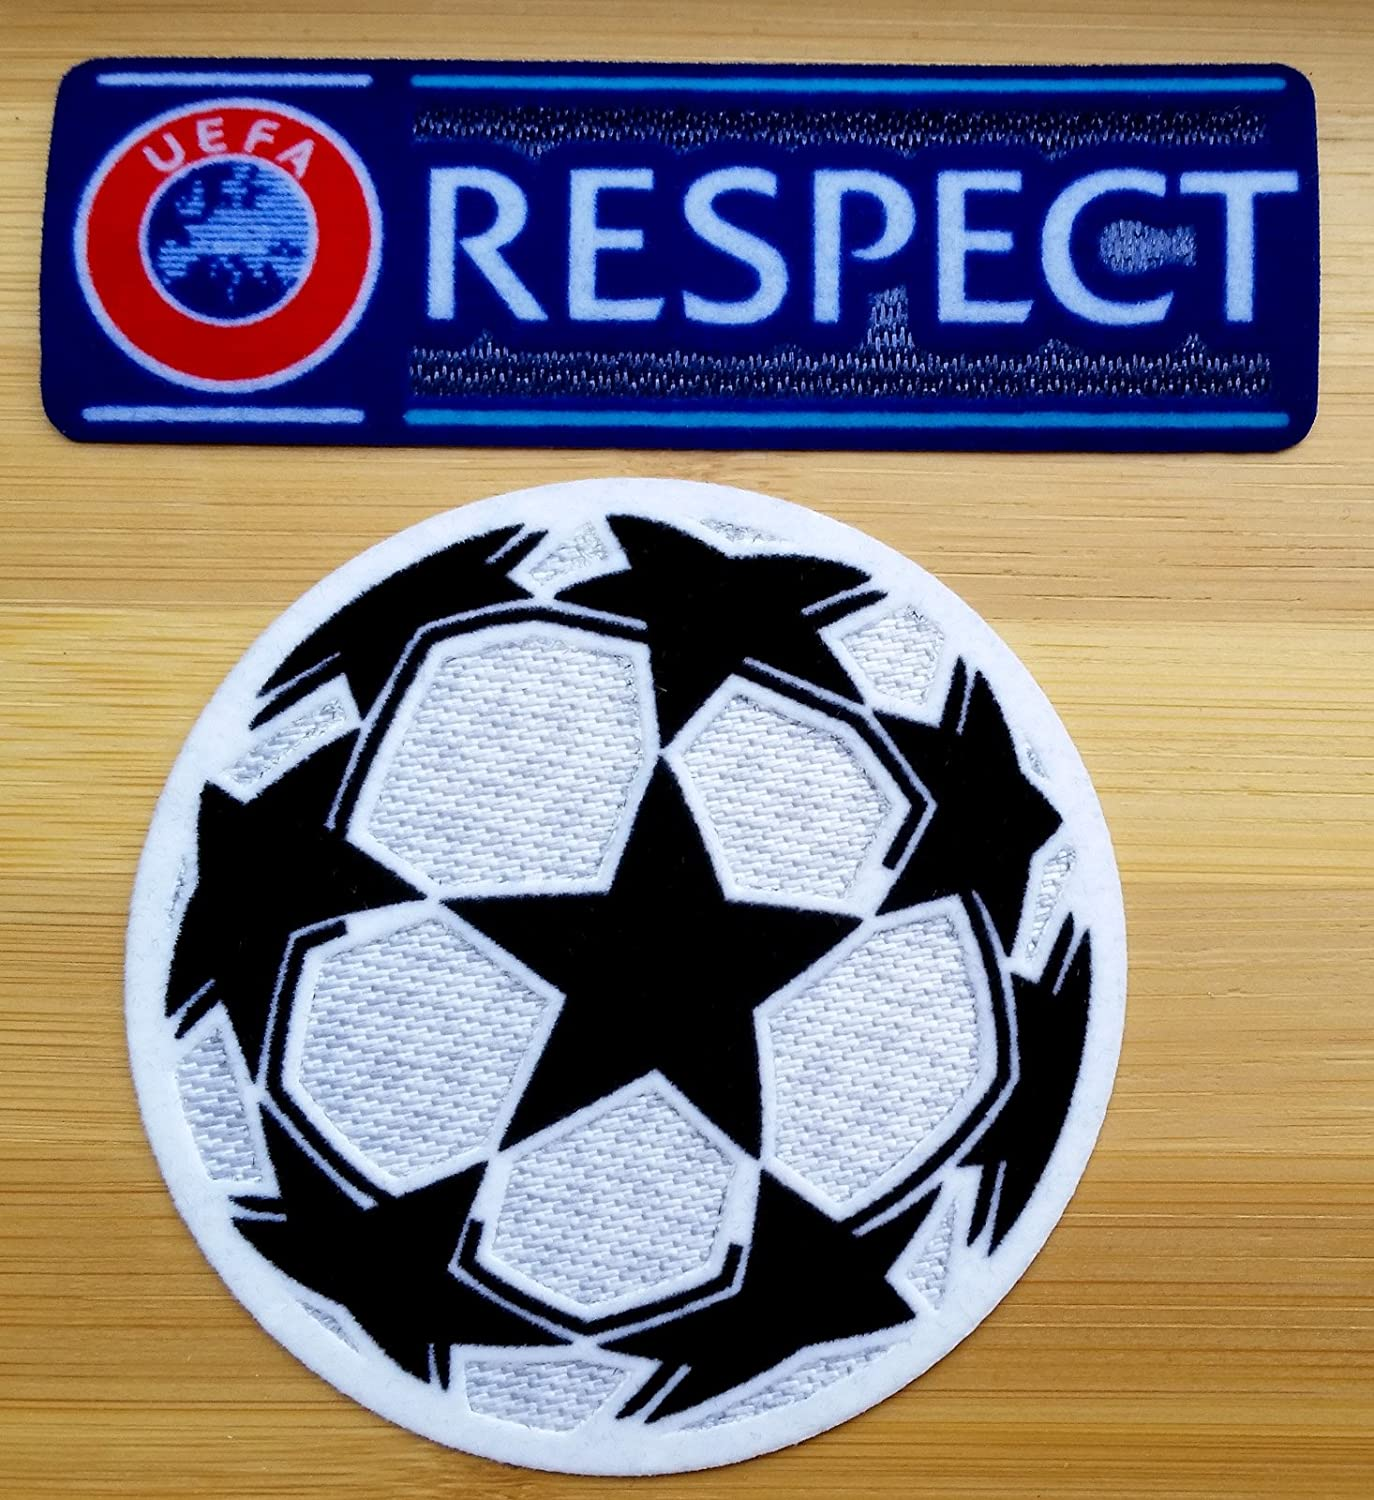 UEFA Champions League Iron-On Soccer Patch and Respect Iron-On Patch